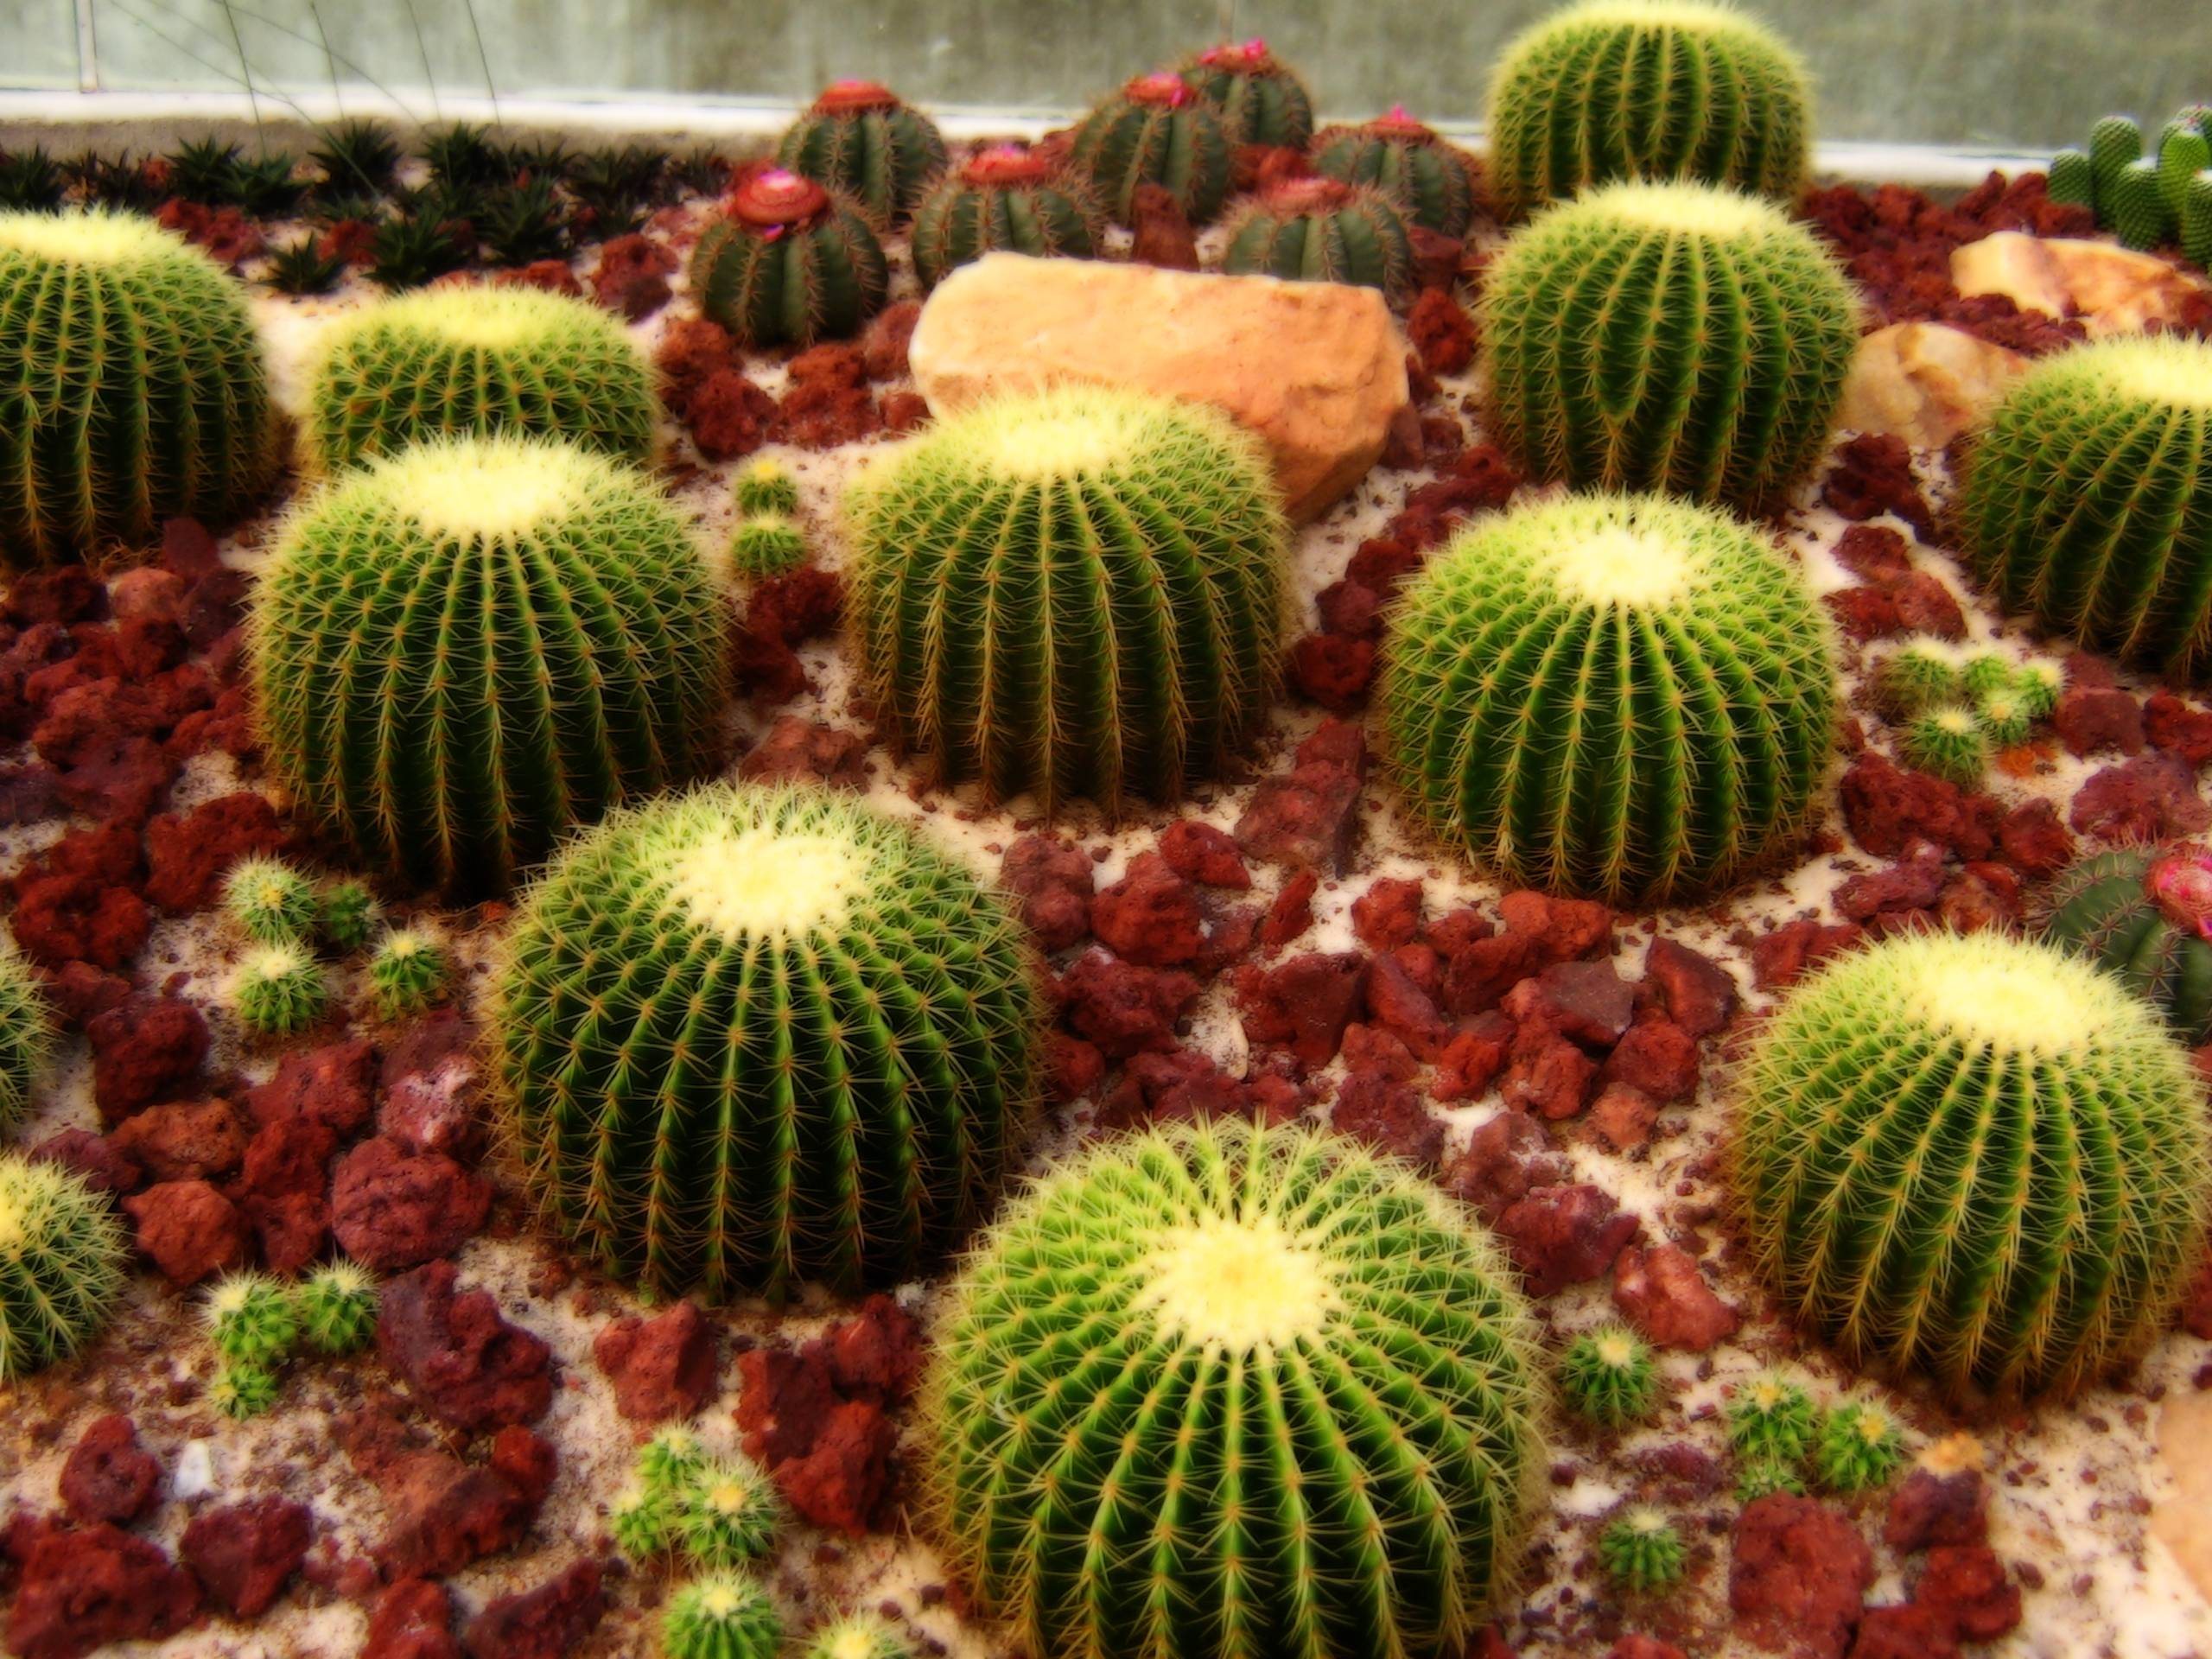 hd cactus wallpapers - photo #5